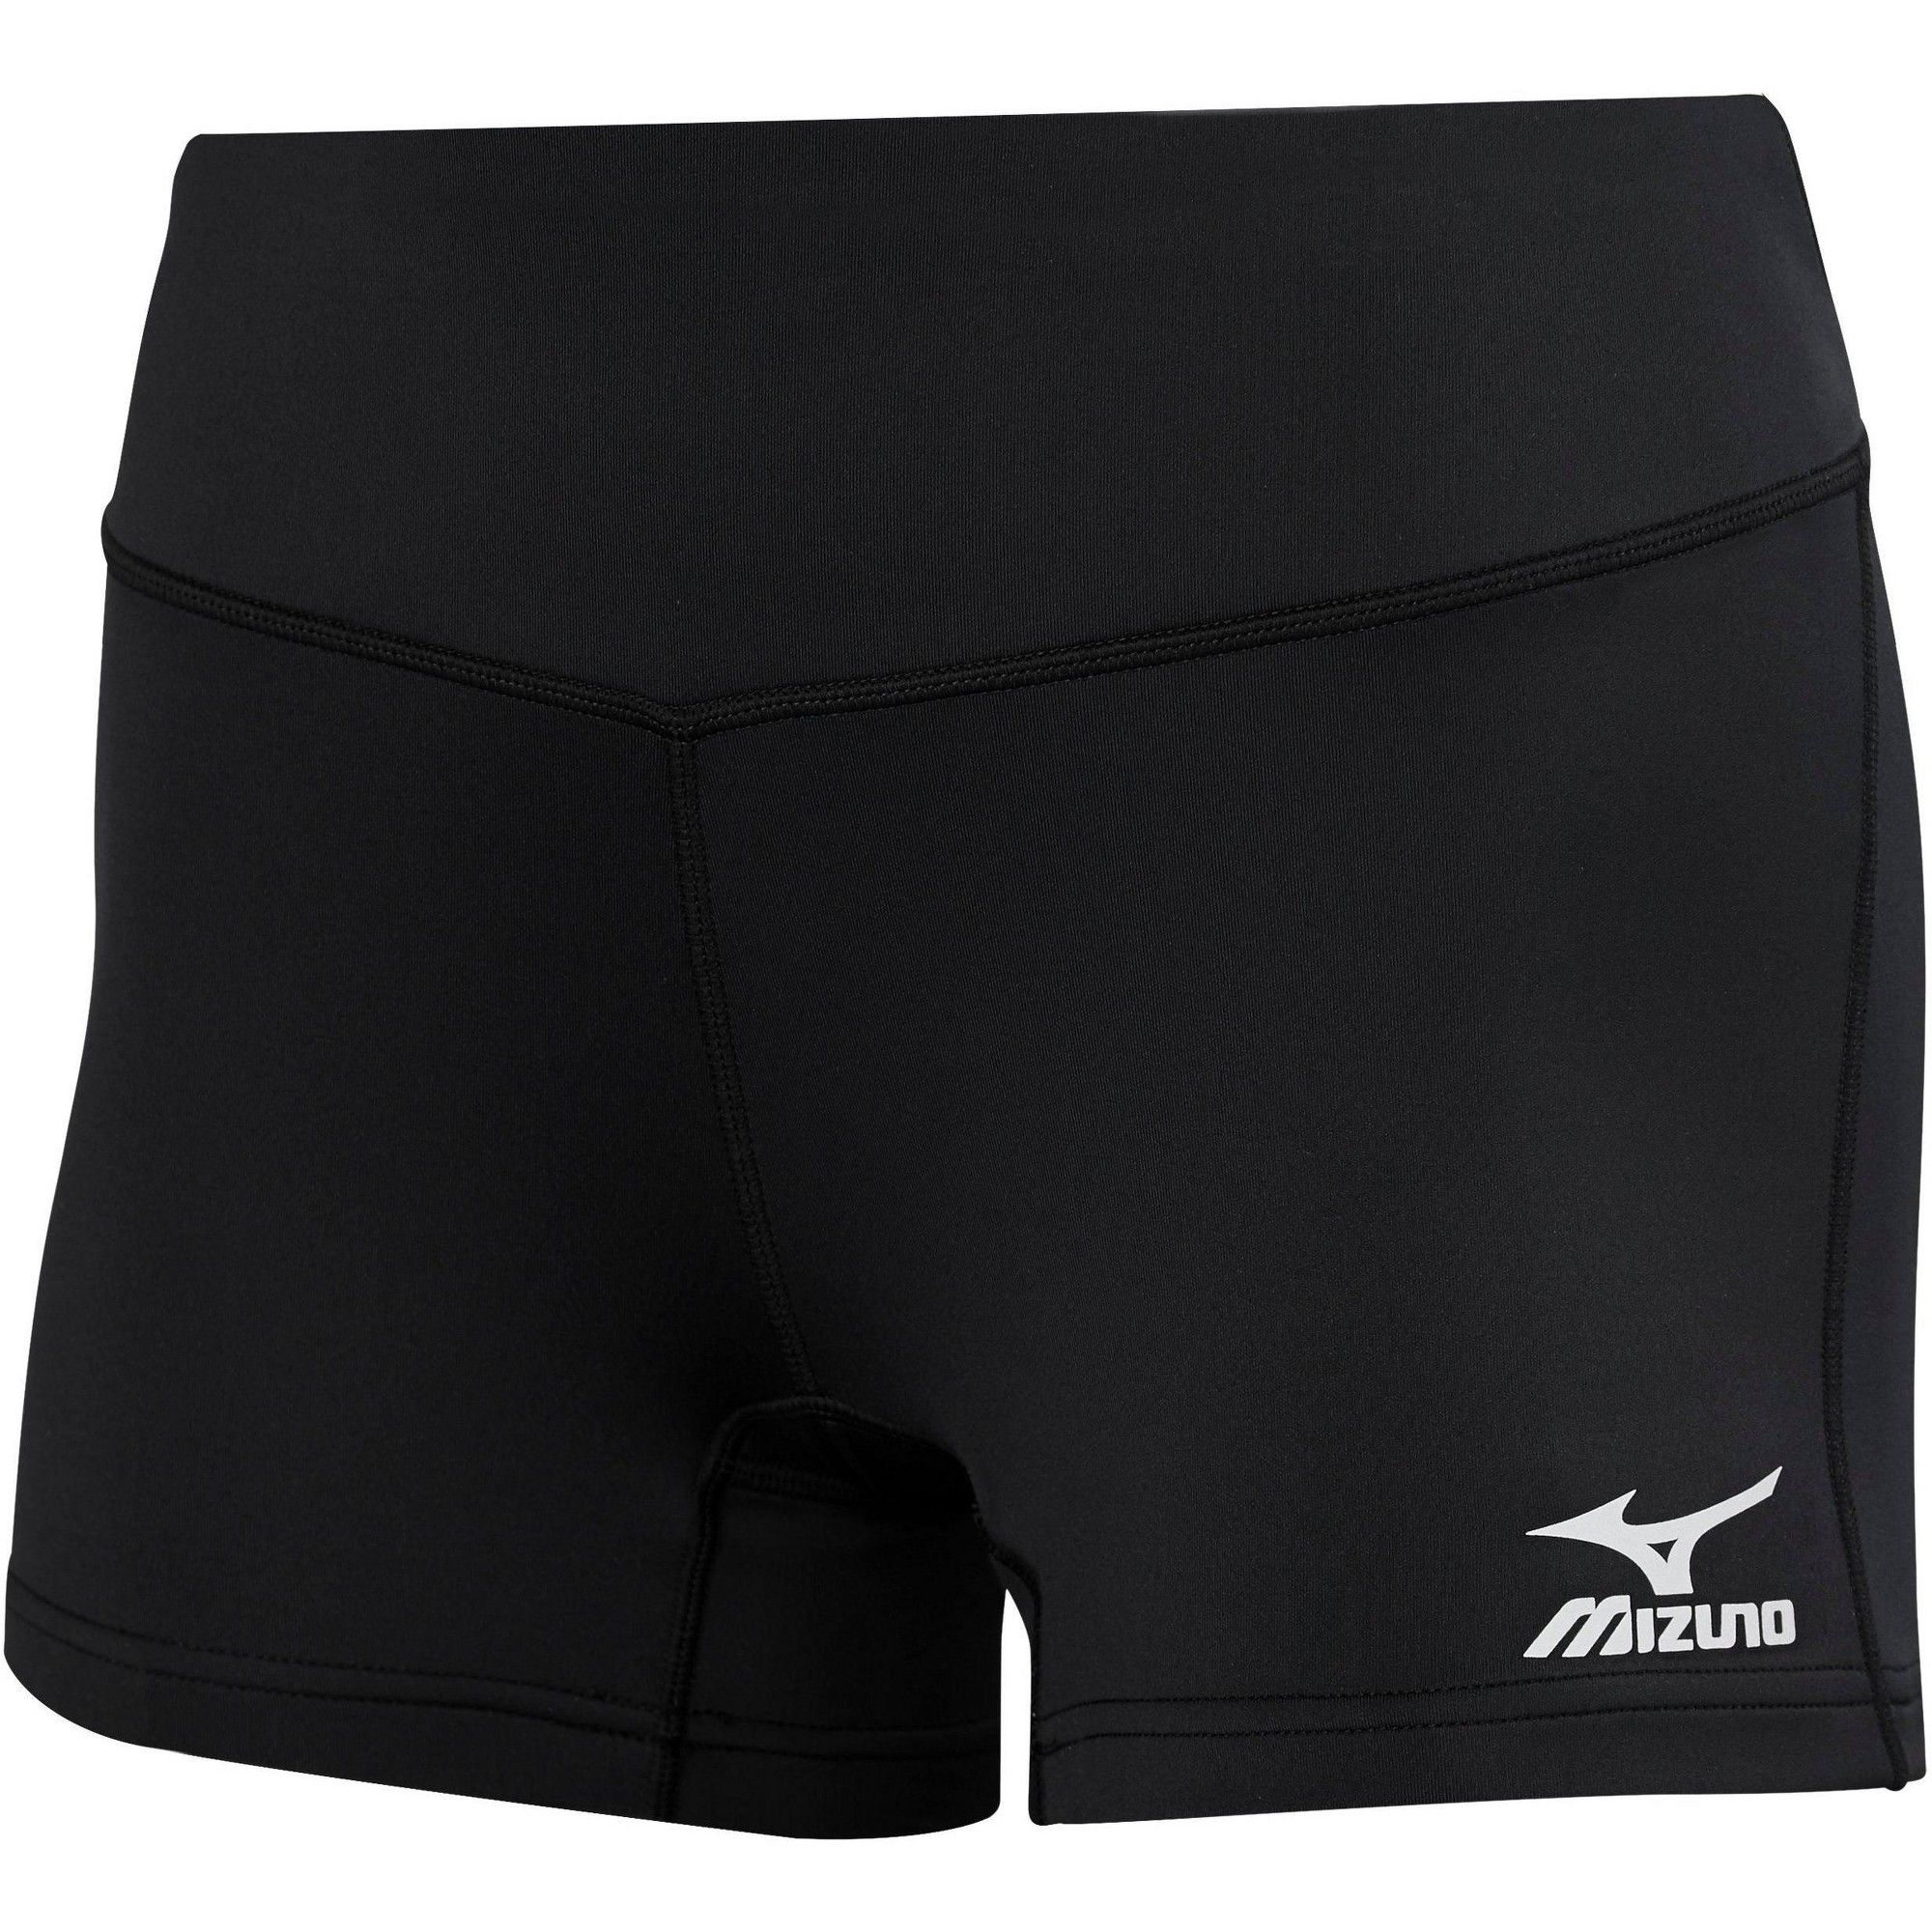 Mizuno Women S Victory 3 5 Inseam Volleyball Shorts Size Extra Extra Small In Color Black 9090 Volleyball Shorts Workout Shorts Women Volleyball Spandex